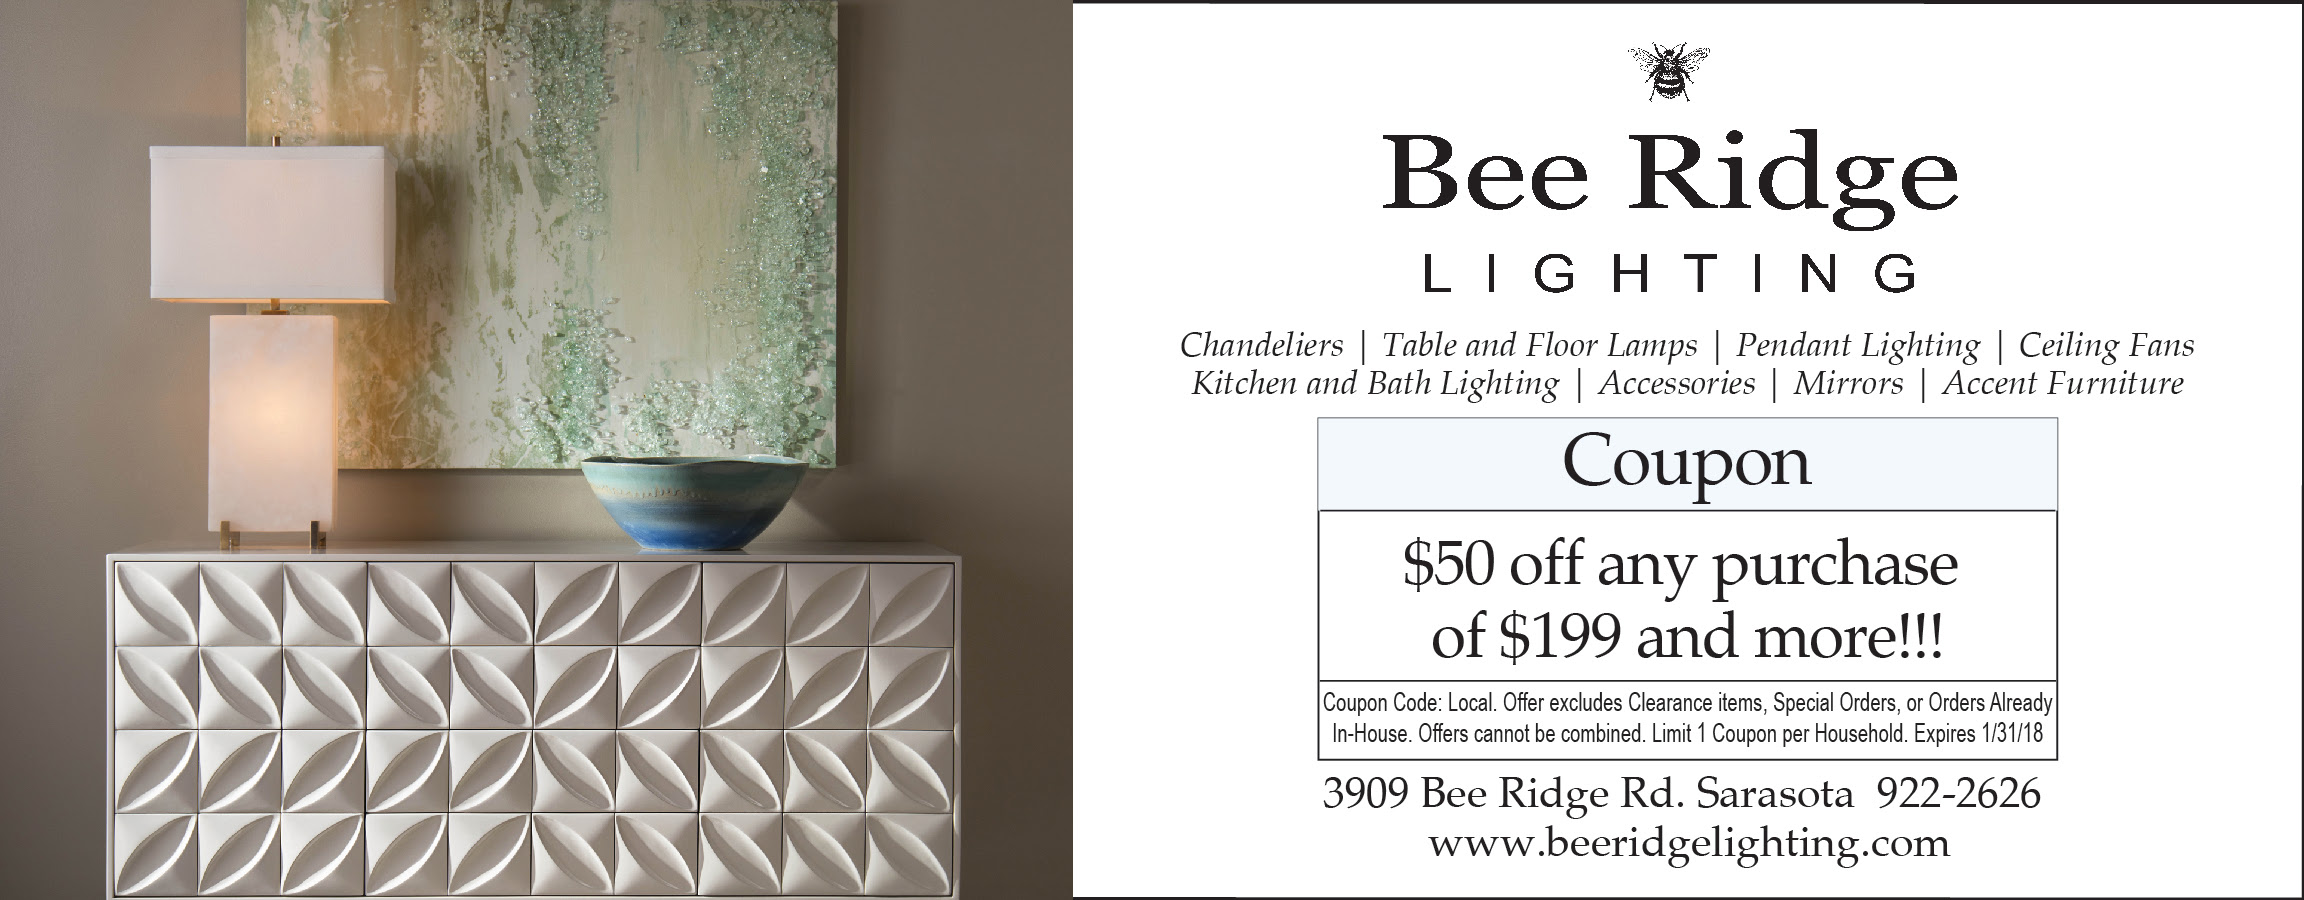 Bee Ridge Lighting The Local Mag